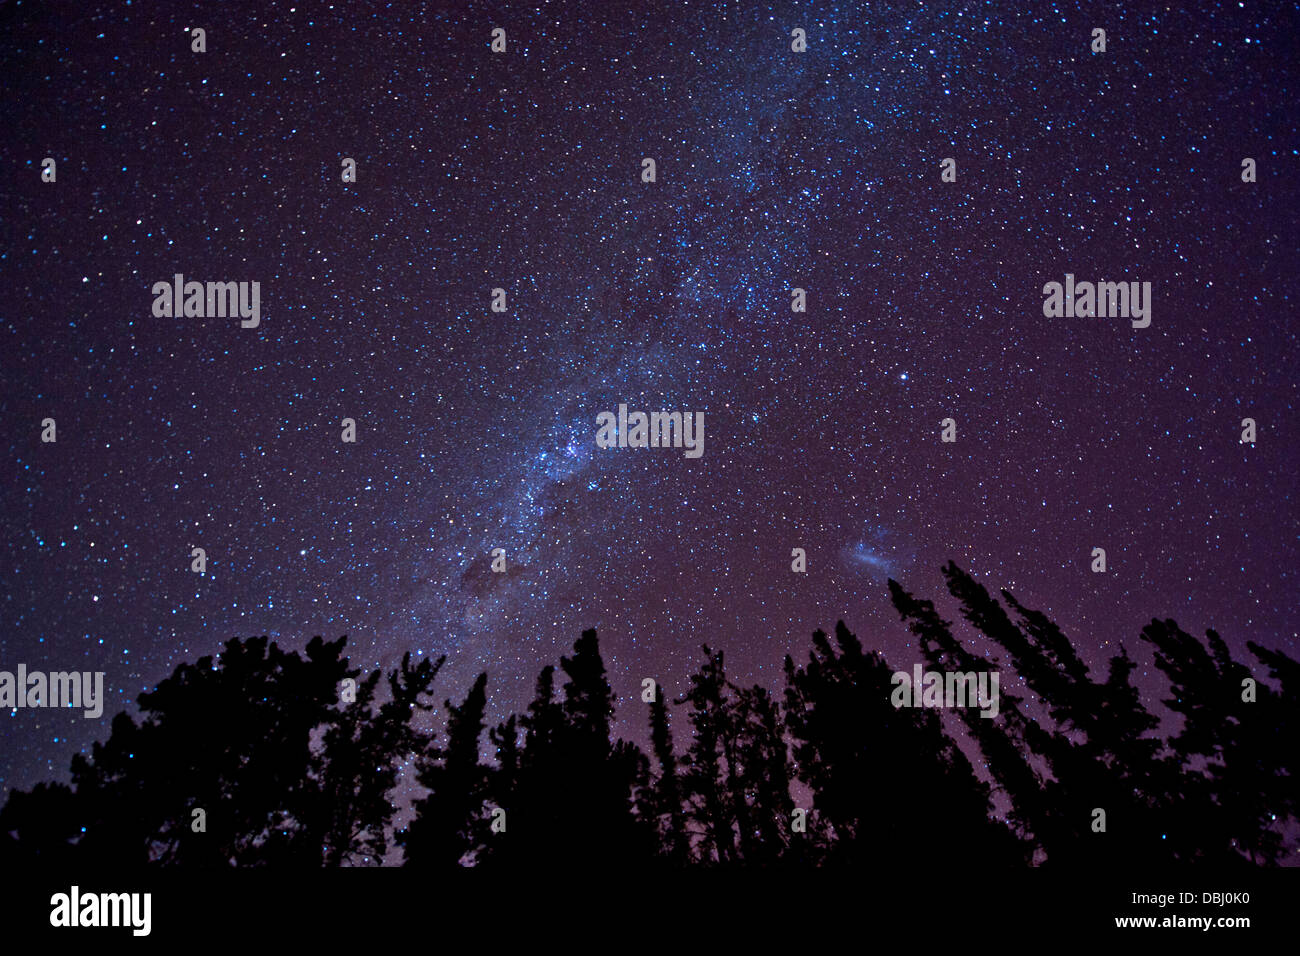 Milky Way seen from the Cederberg Mountains in South Africa. Stock Photo